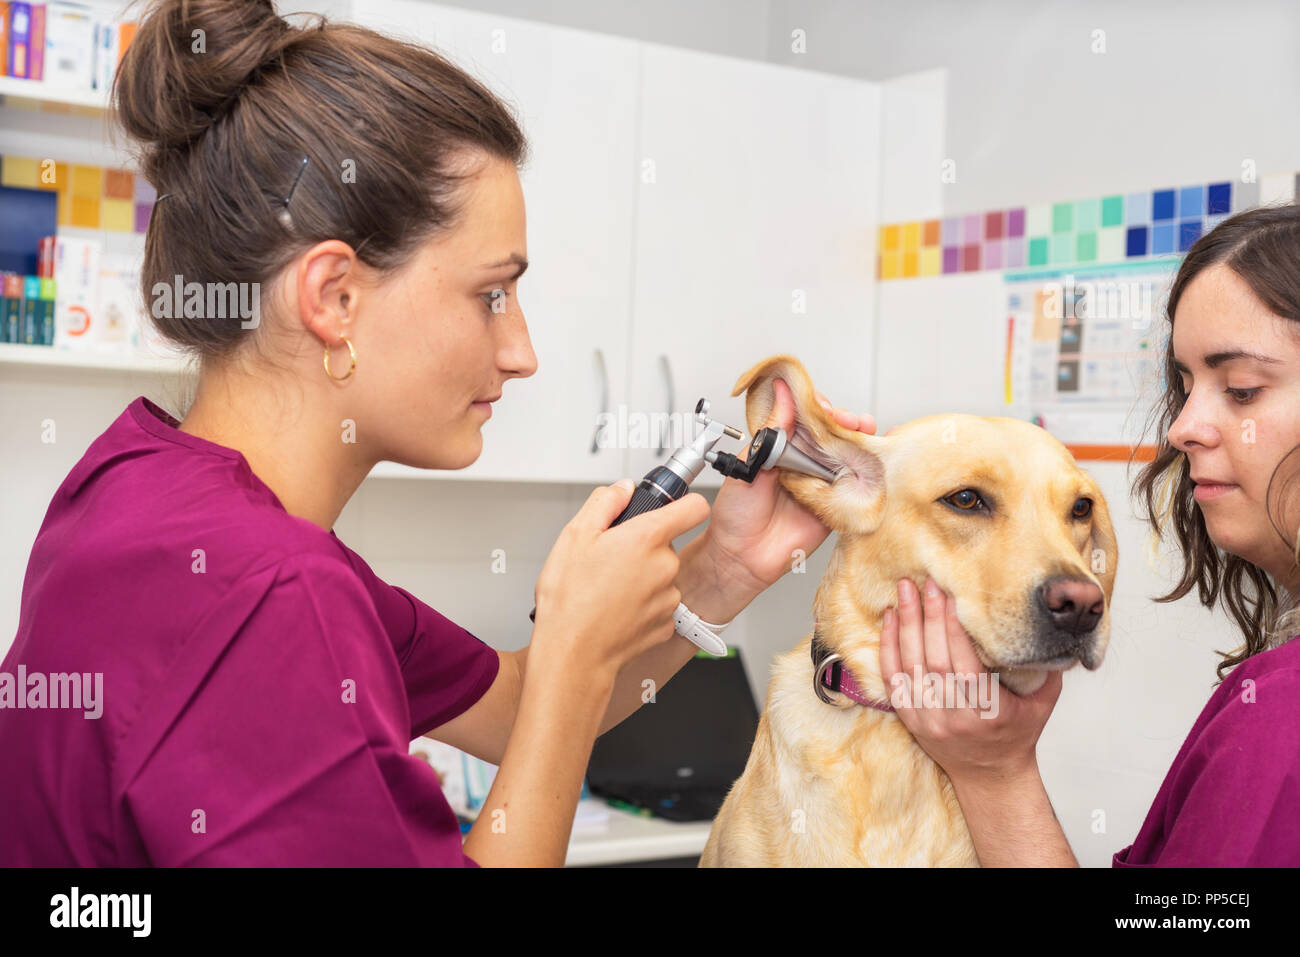 Hearing checkup of a dog in veterinary clinic - Stock Image